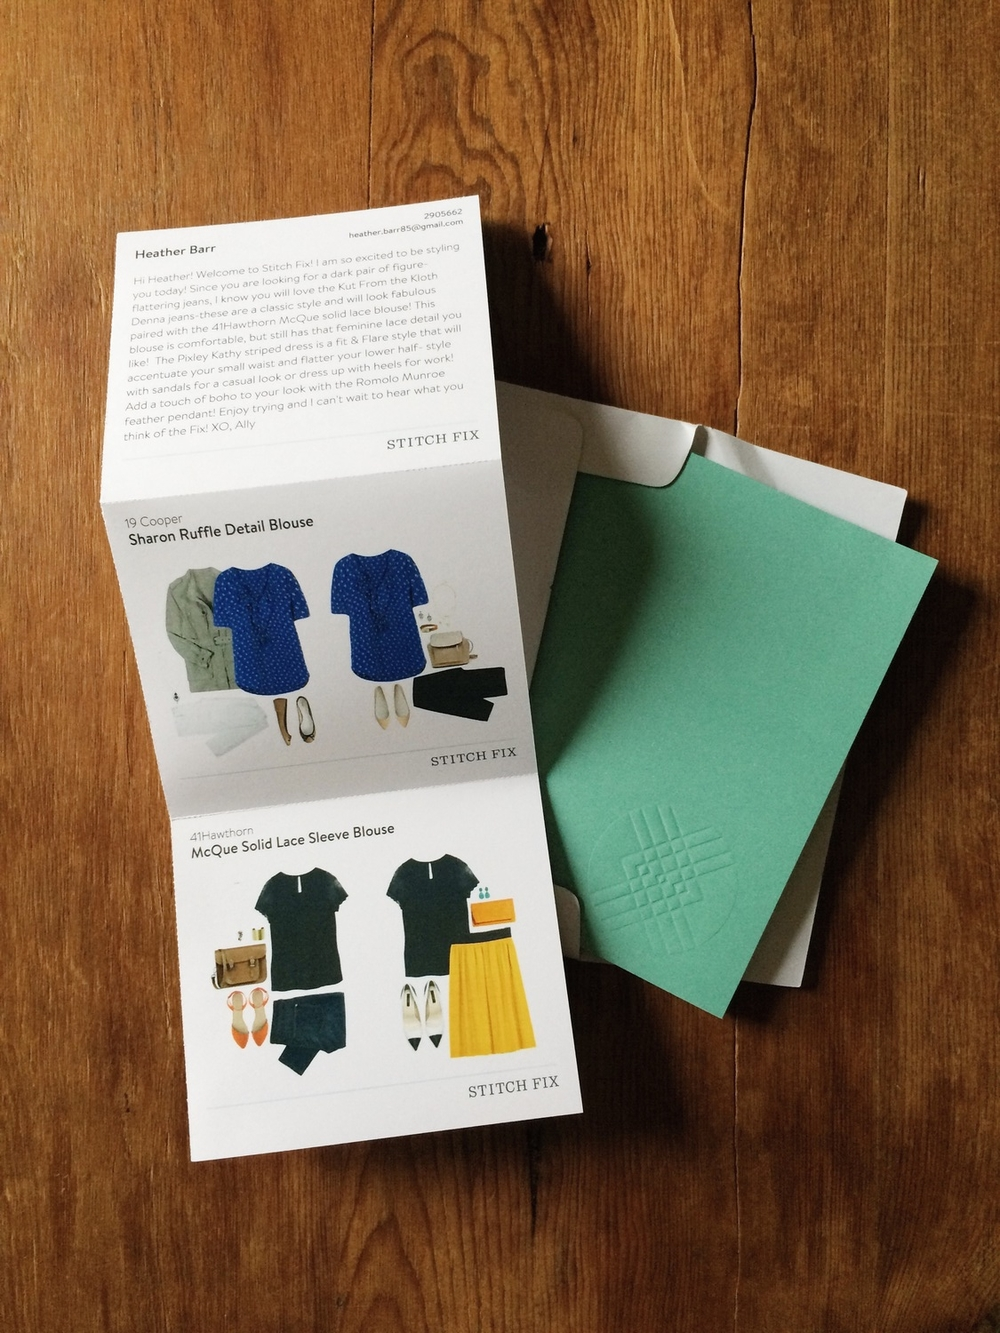 My 1st Experience with Stitch Fix - a review